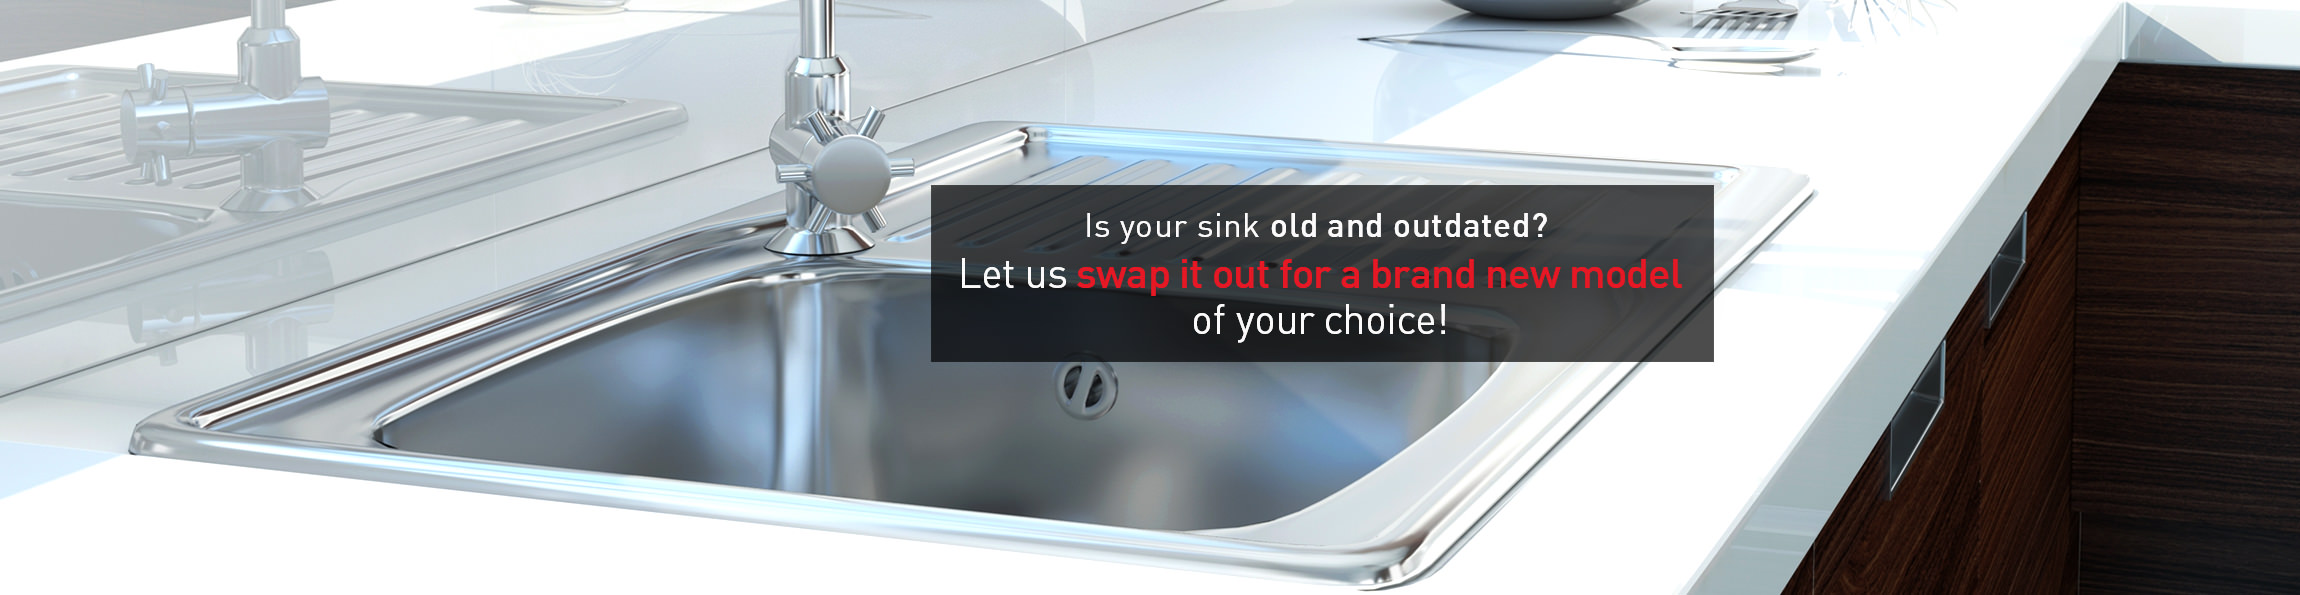 Let Surface Link Replace or Update your Old, Outdated Sink!